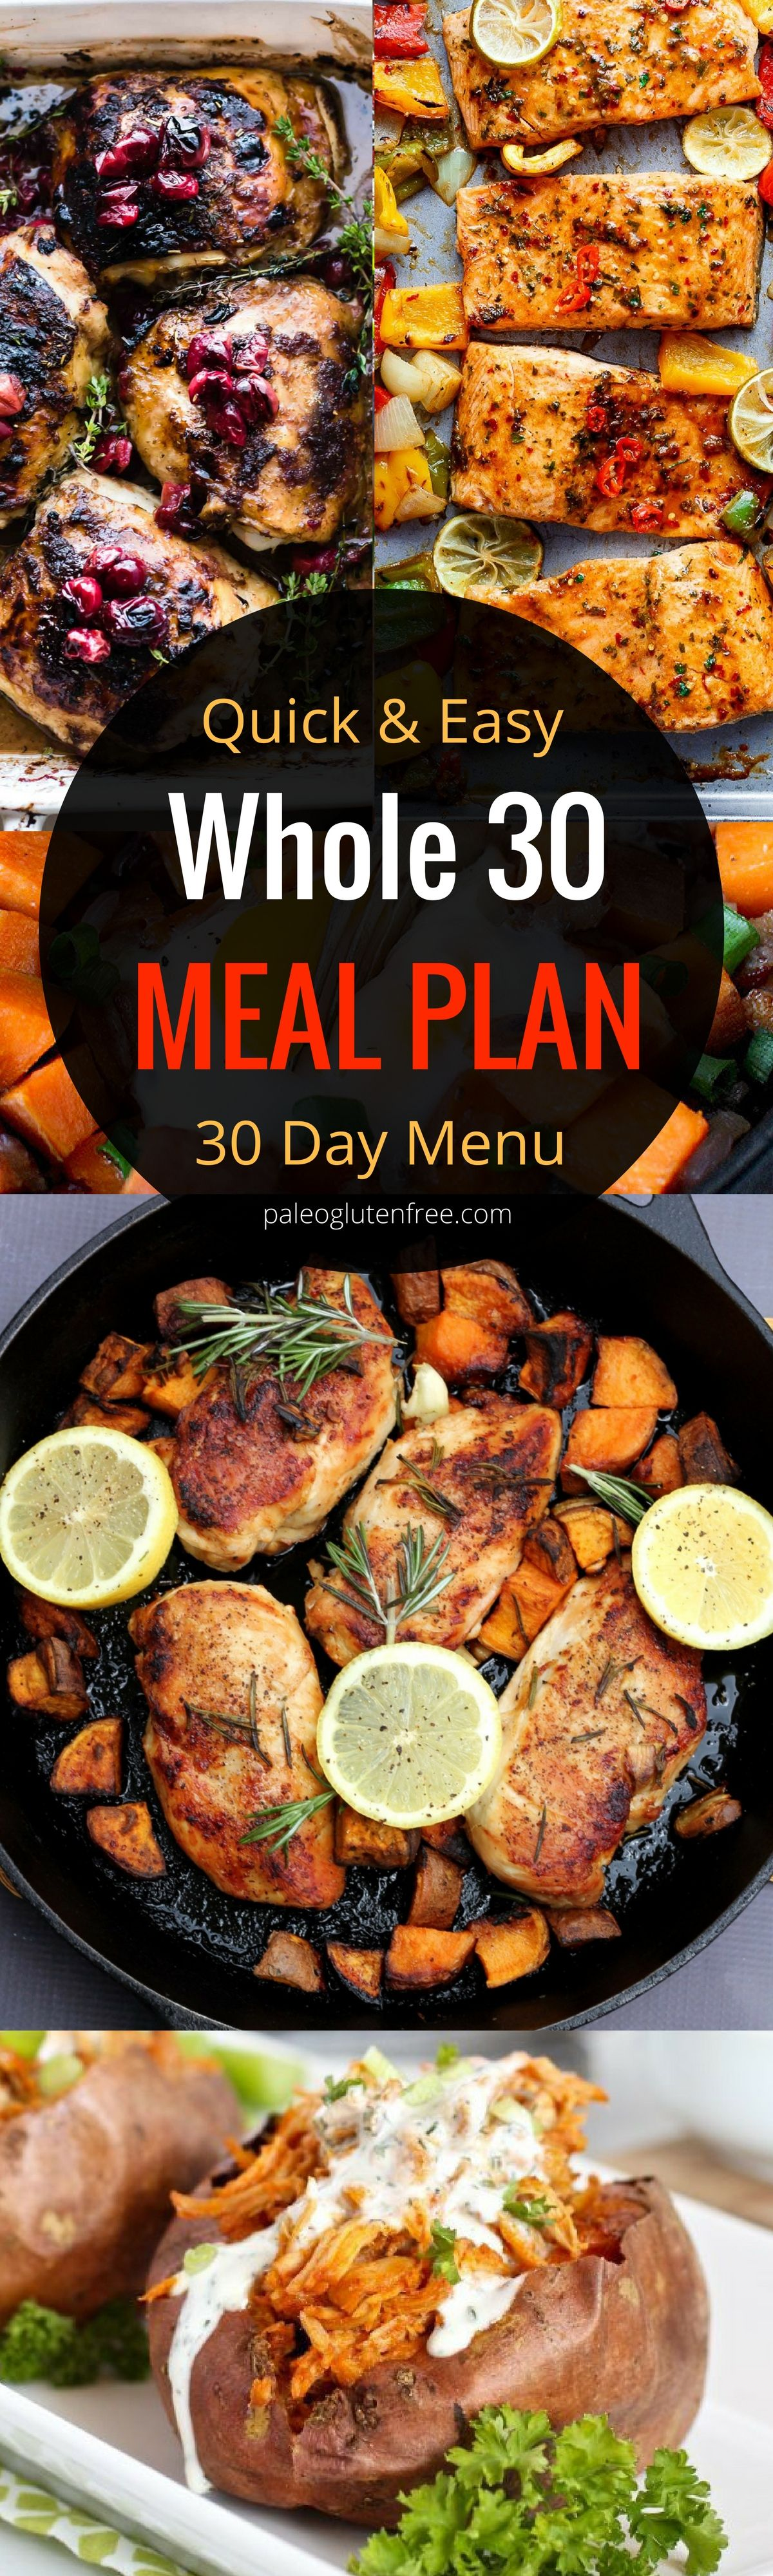 30 days of Whole 30 meals! A complete Whole 30 paleo menu plan. Quick, easy, and delicious meals and tips for eating whole 30